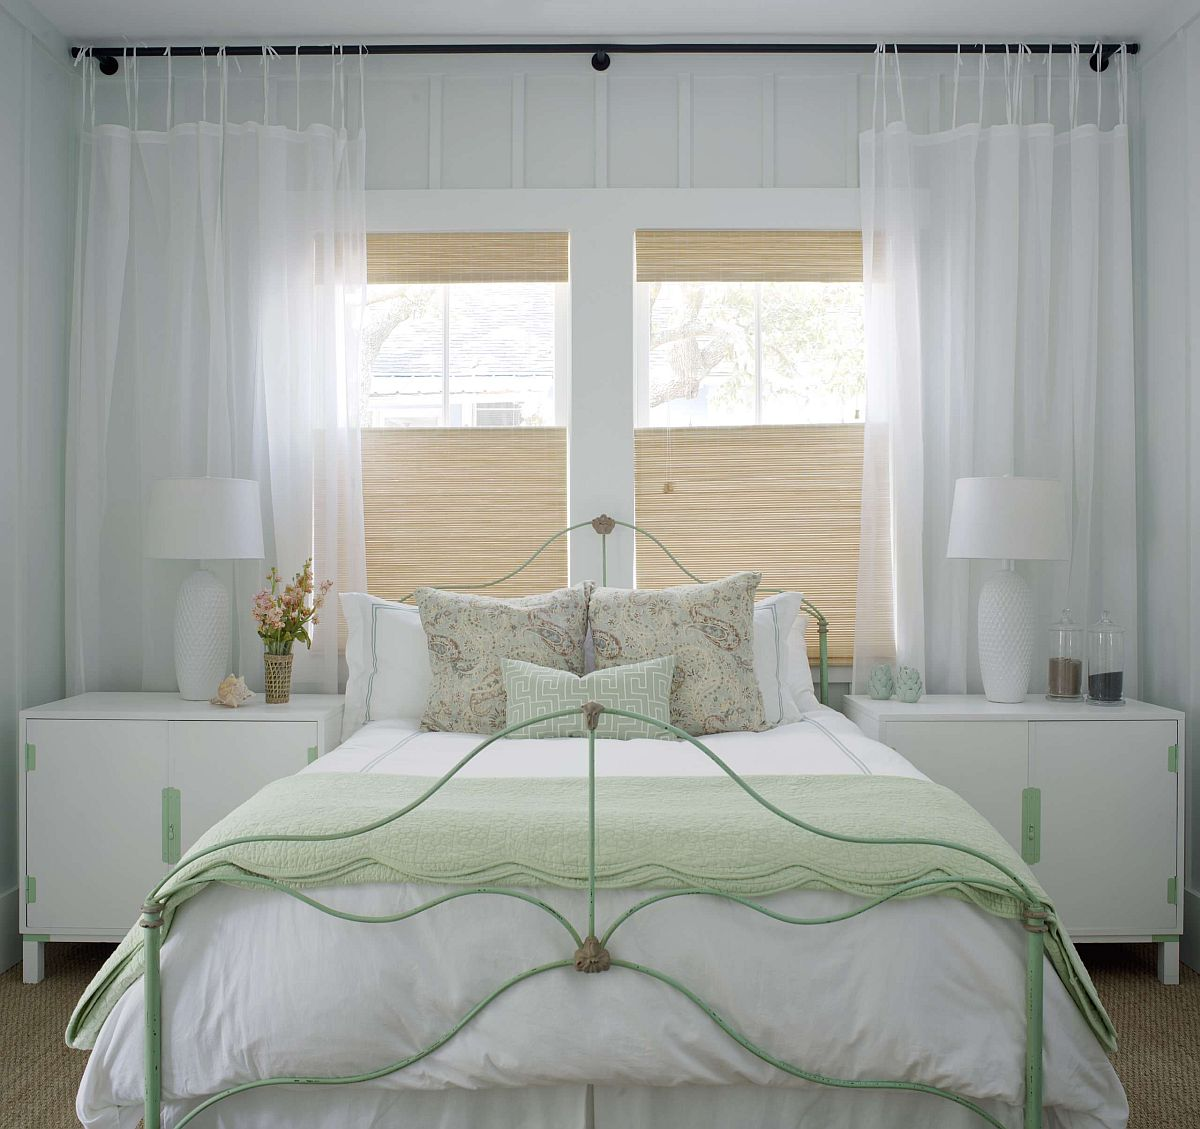 Wrought-iron-bed-frame-painted-pastel-green-brings-color-to-the-chic-bedroom-in-dreamy-white